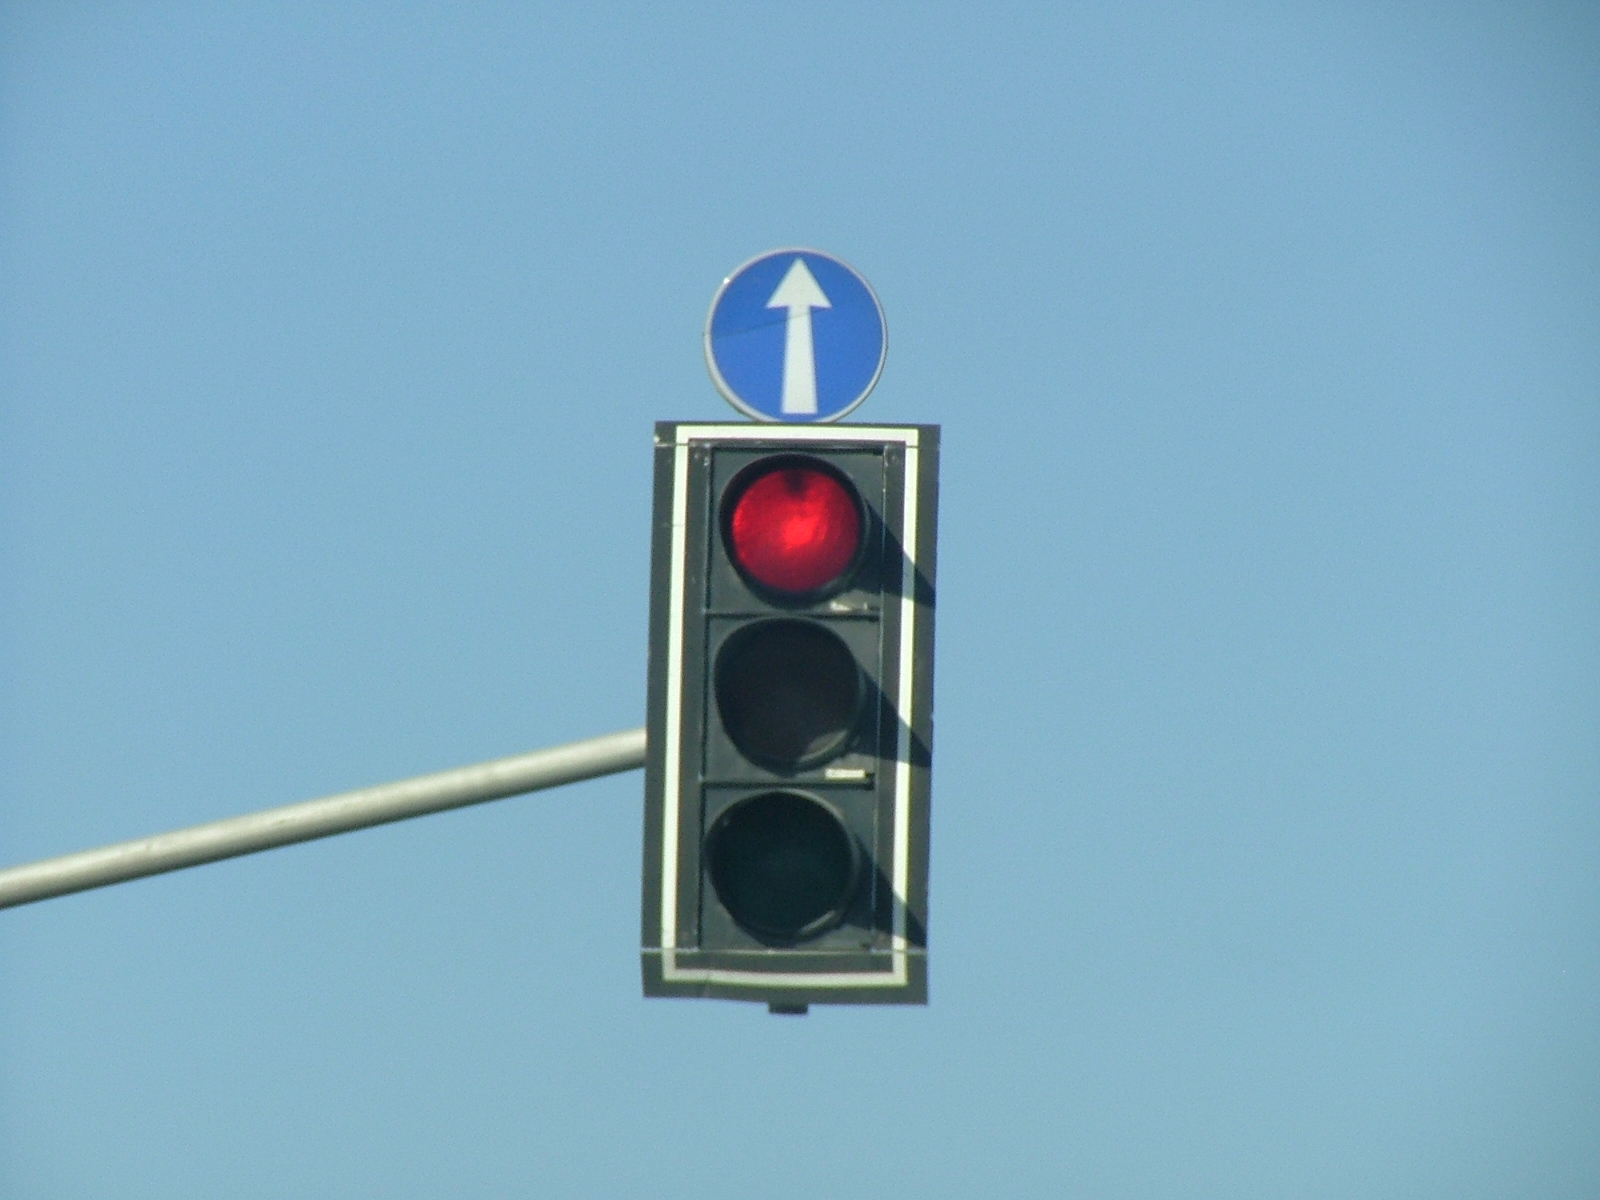 Israel: Fine For Running A Red Light Now NIS 1,500